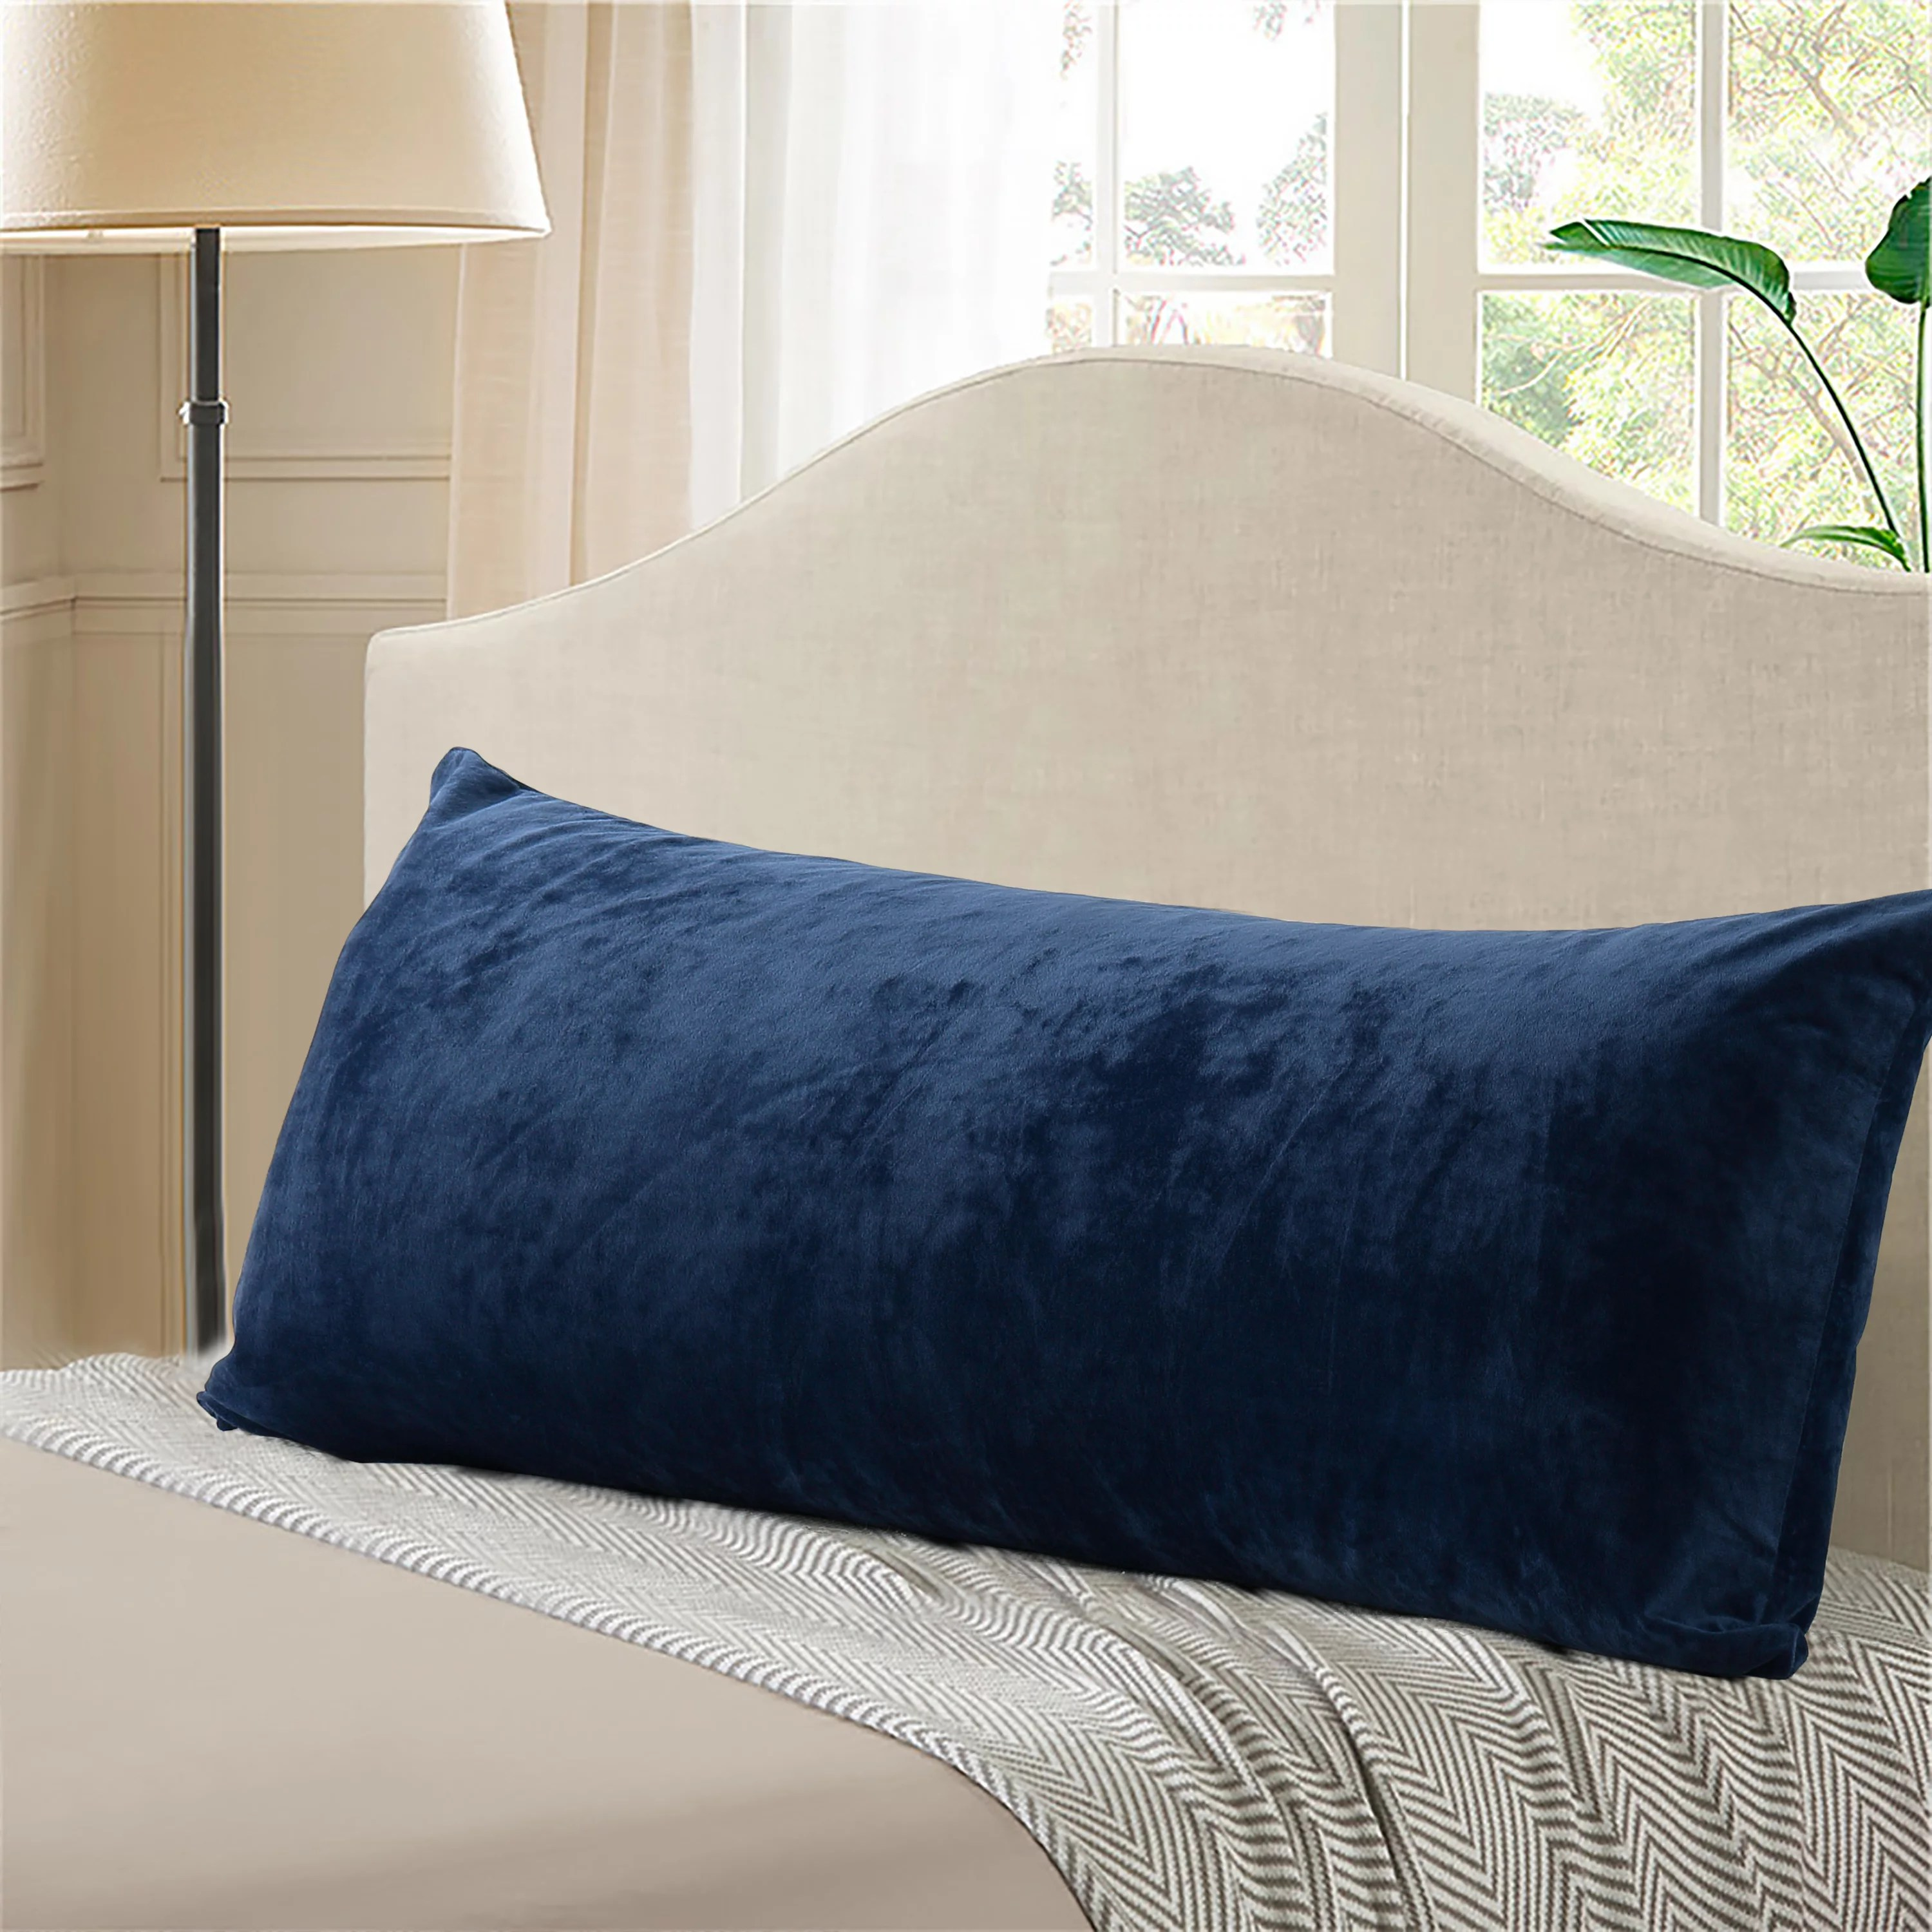 evolive micromink body pillow cover 21 x54 with zipper closure